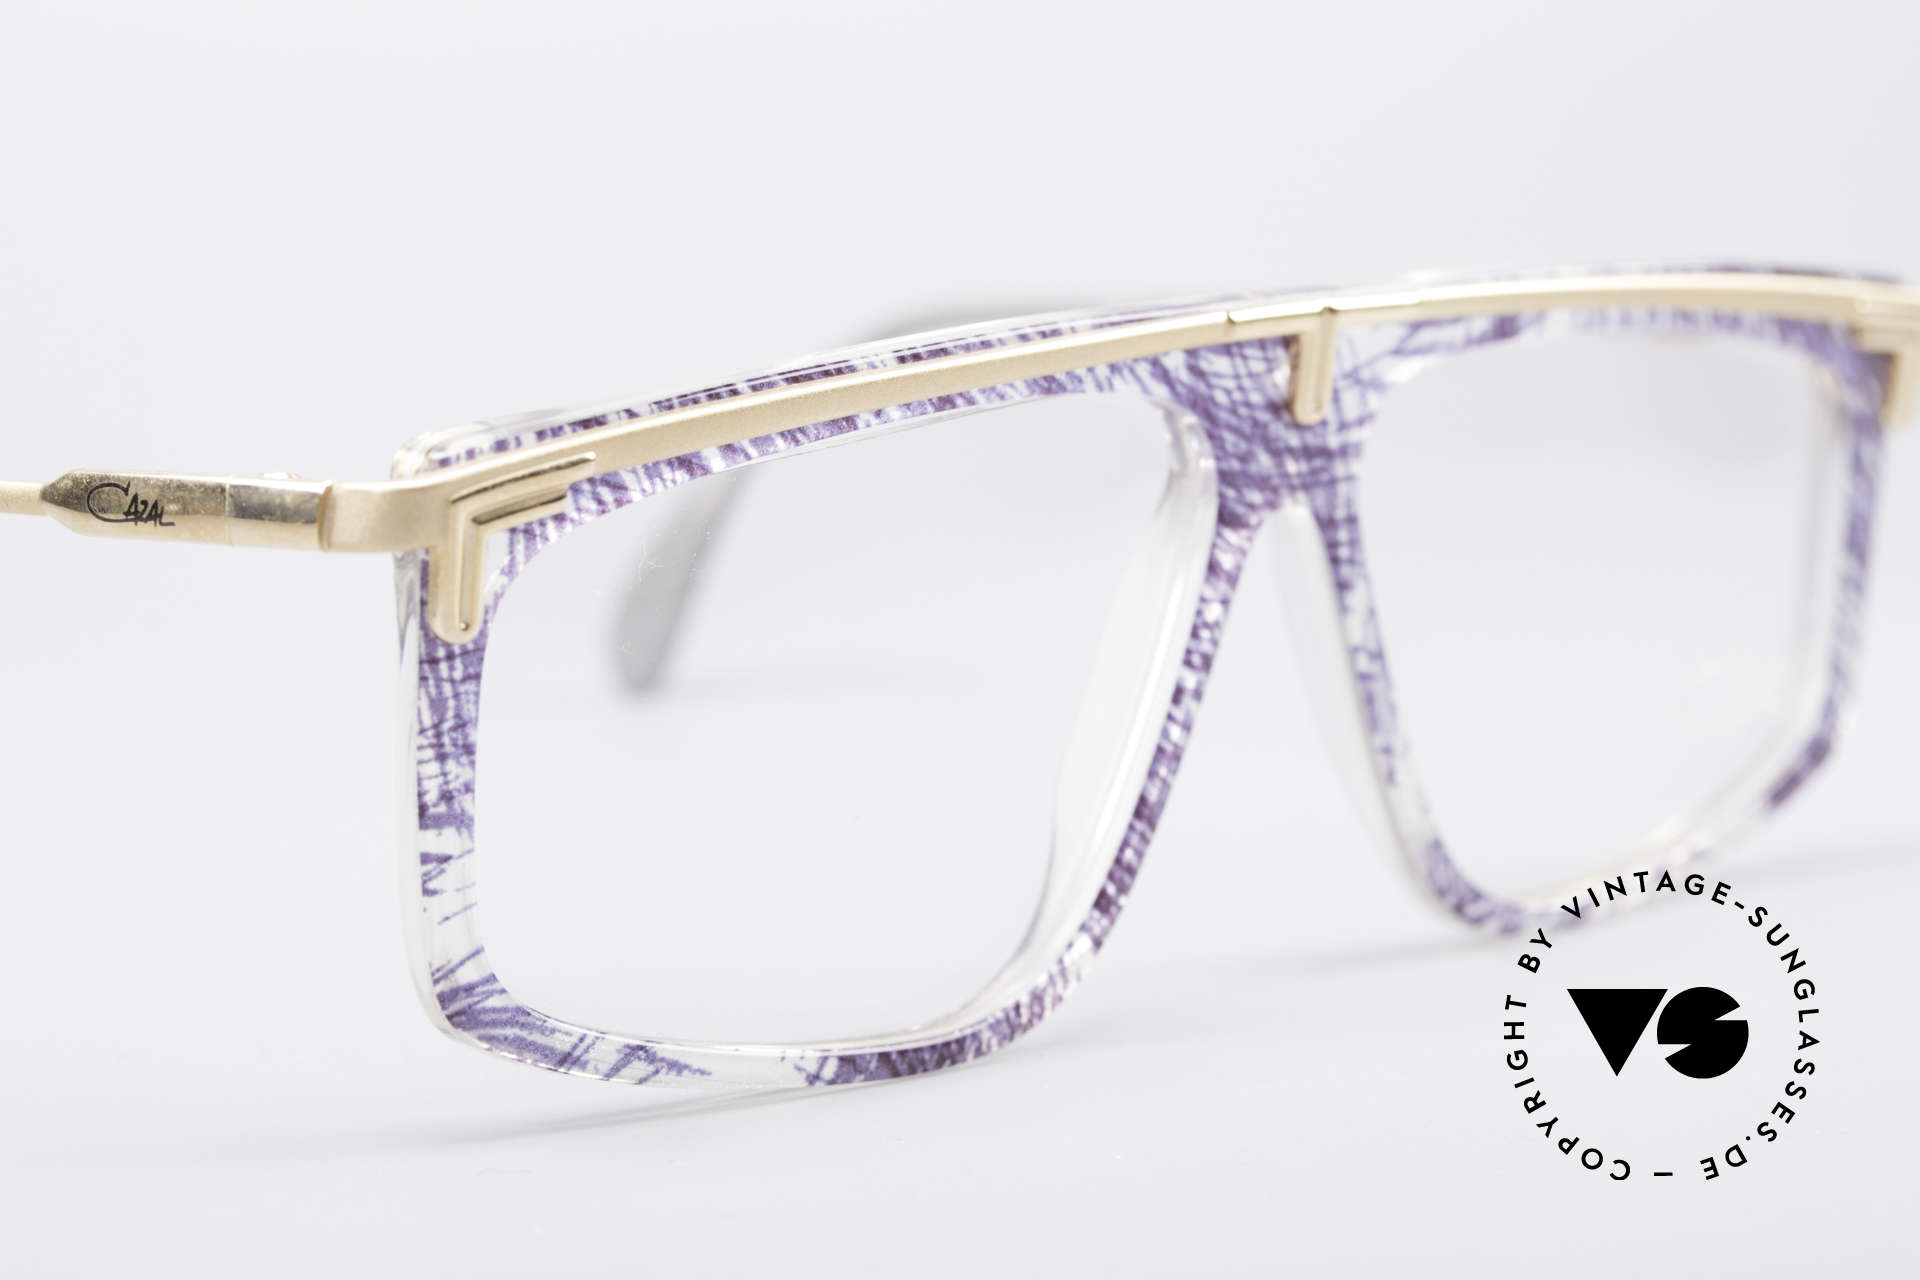 Cazal 190 Old School Hip Hop Frame, today called as 'HipHop glasses' or 'old school glasses', Made for Men